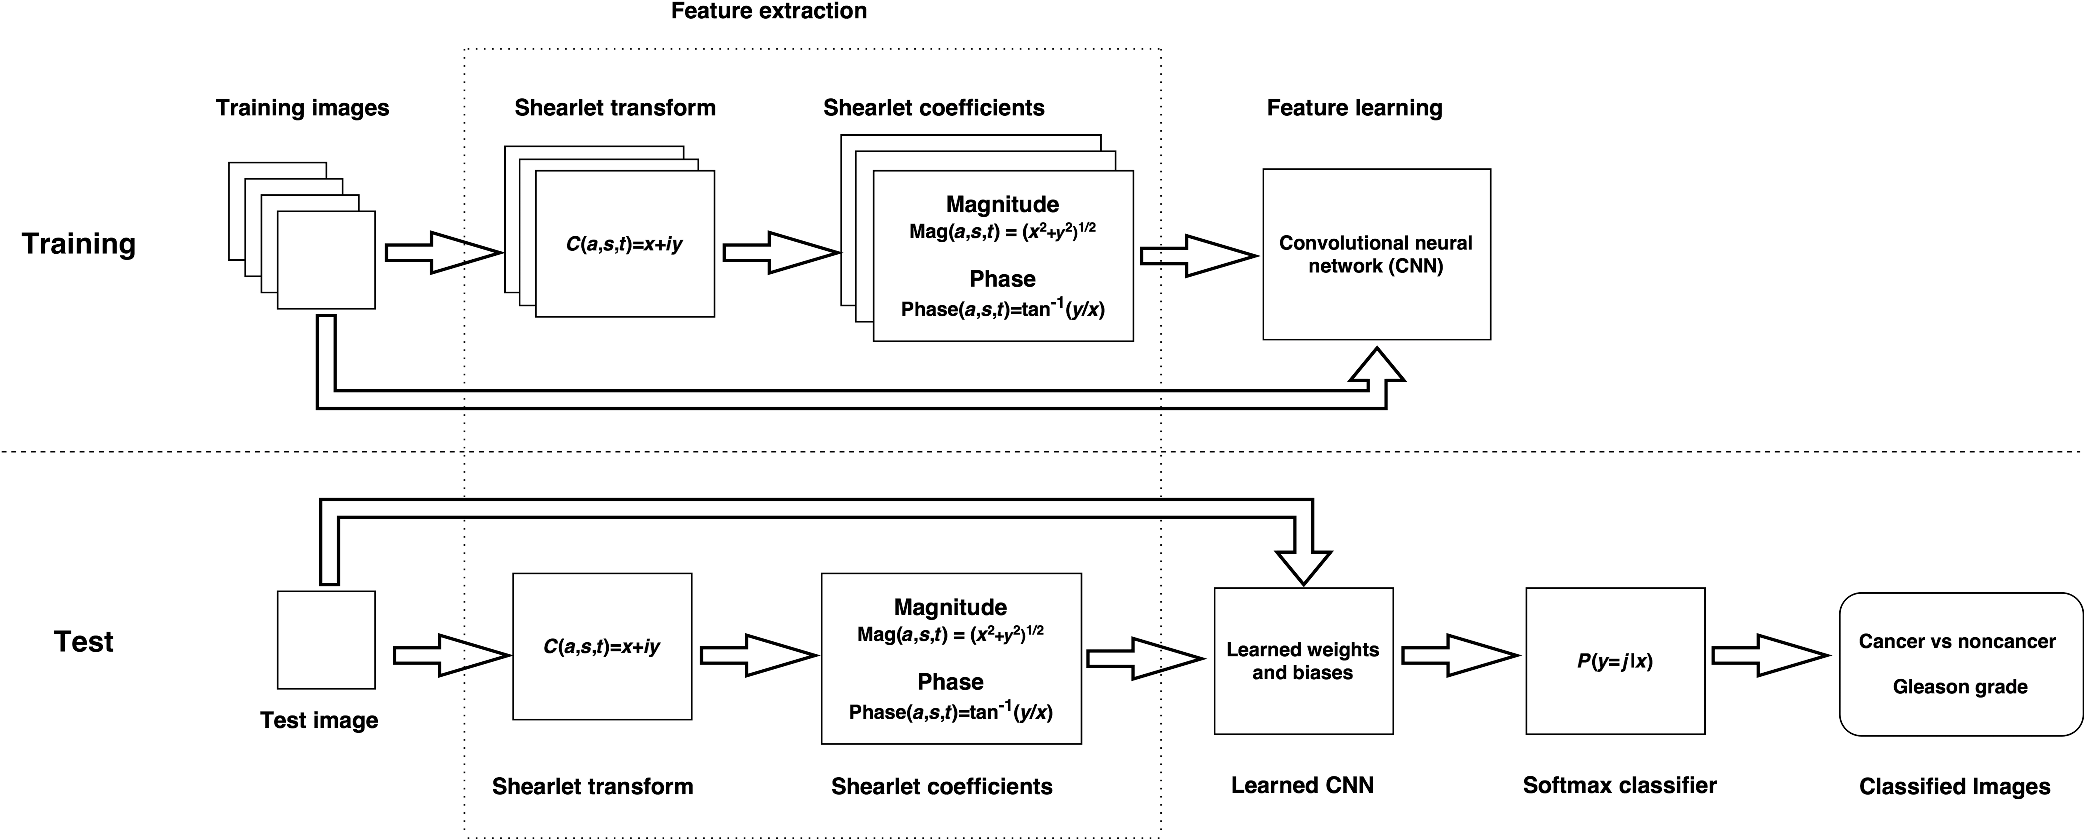 Microscopic Medical Image Classification Framework Via Deep Learning H 261 Block Diagram Of Our Proposed Consisting The Training And Test Phases